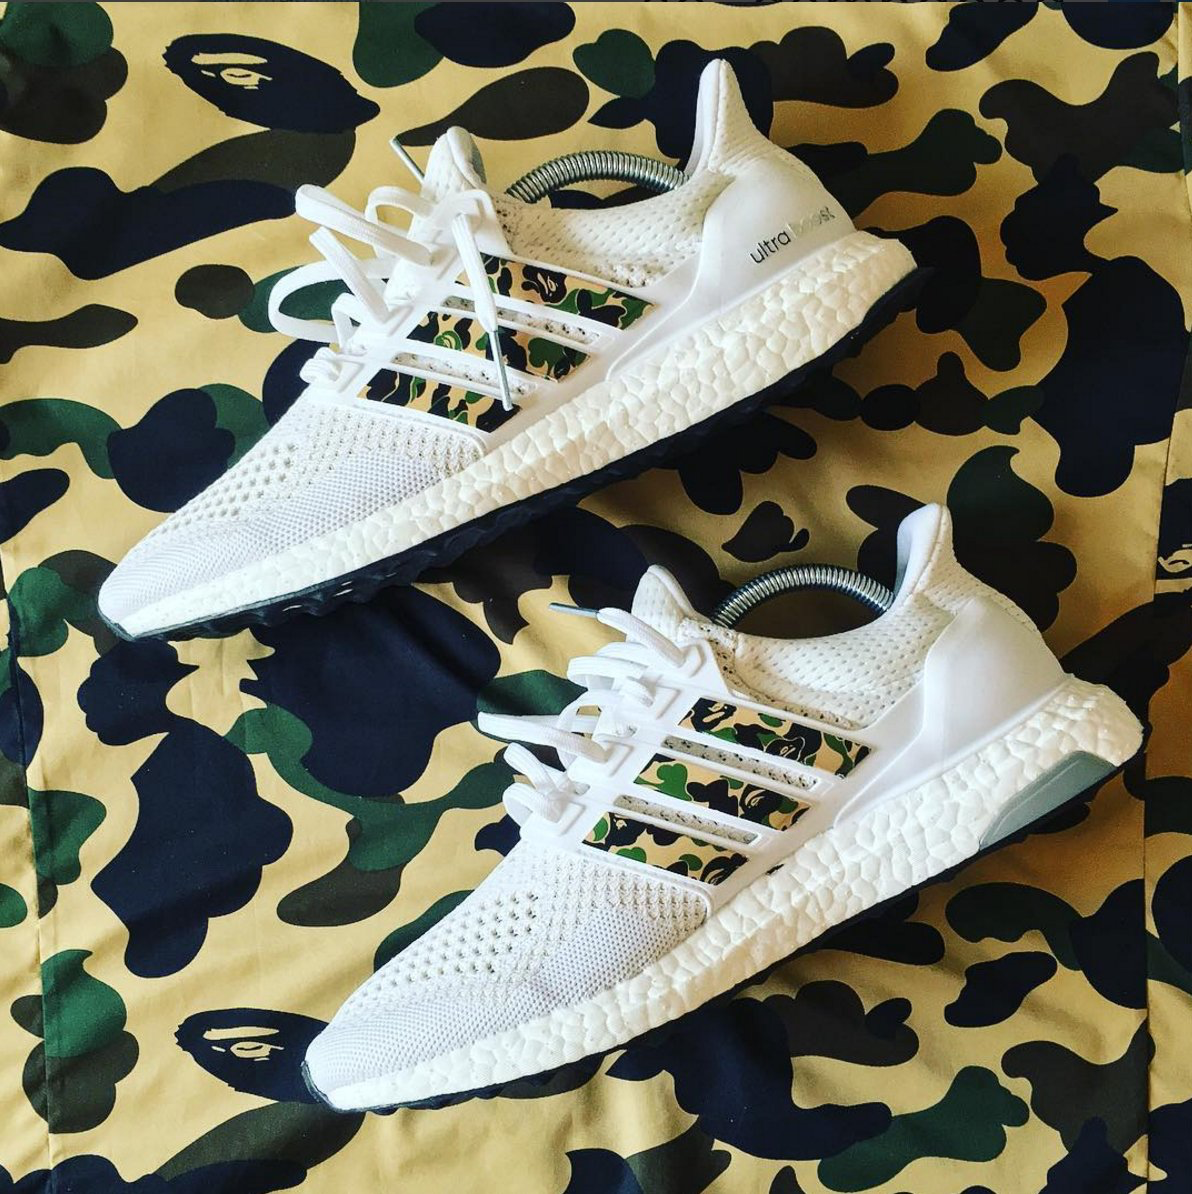 premium selection 3e9b4 4dfa0 Bape x Adidas Ultra Boosts.